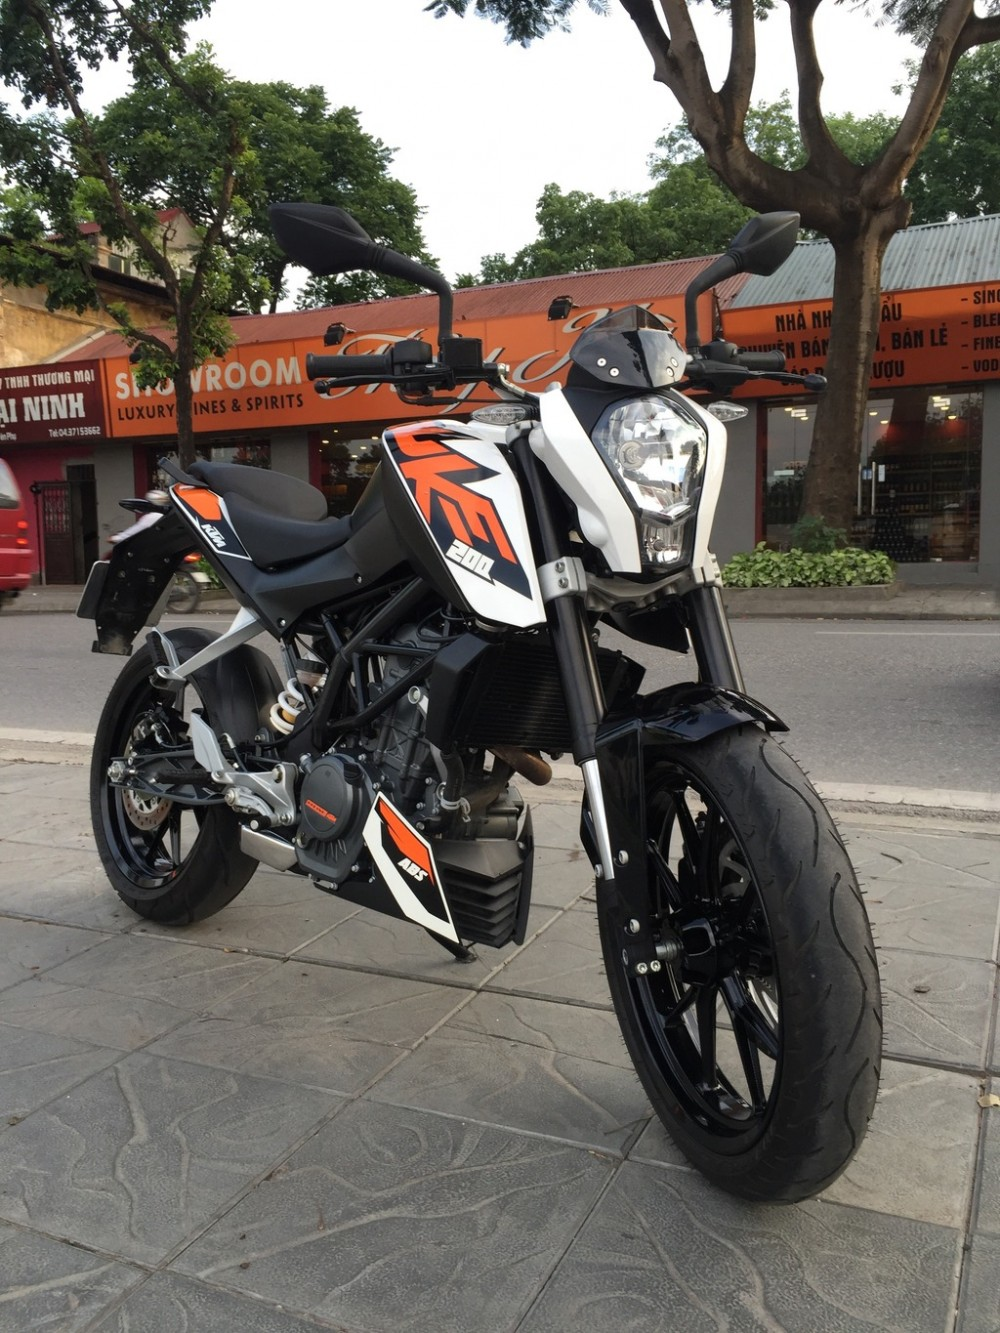 Ban KTM DUKE 200 ABS Di cuc it gia cuc tot